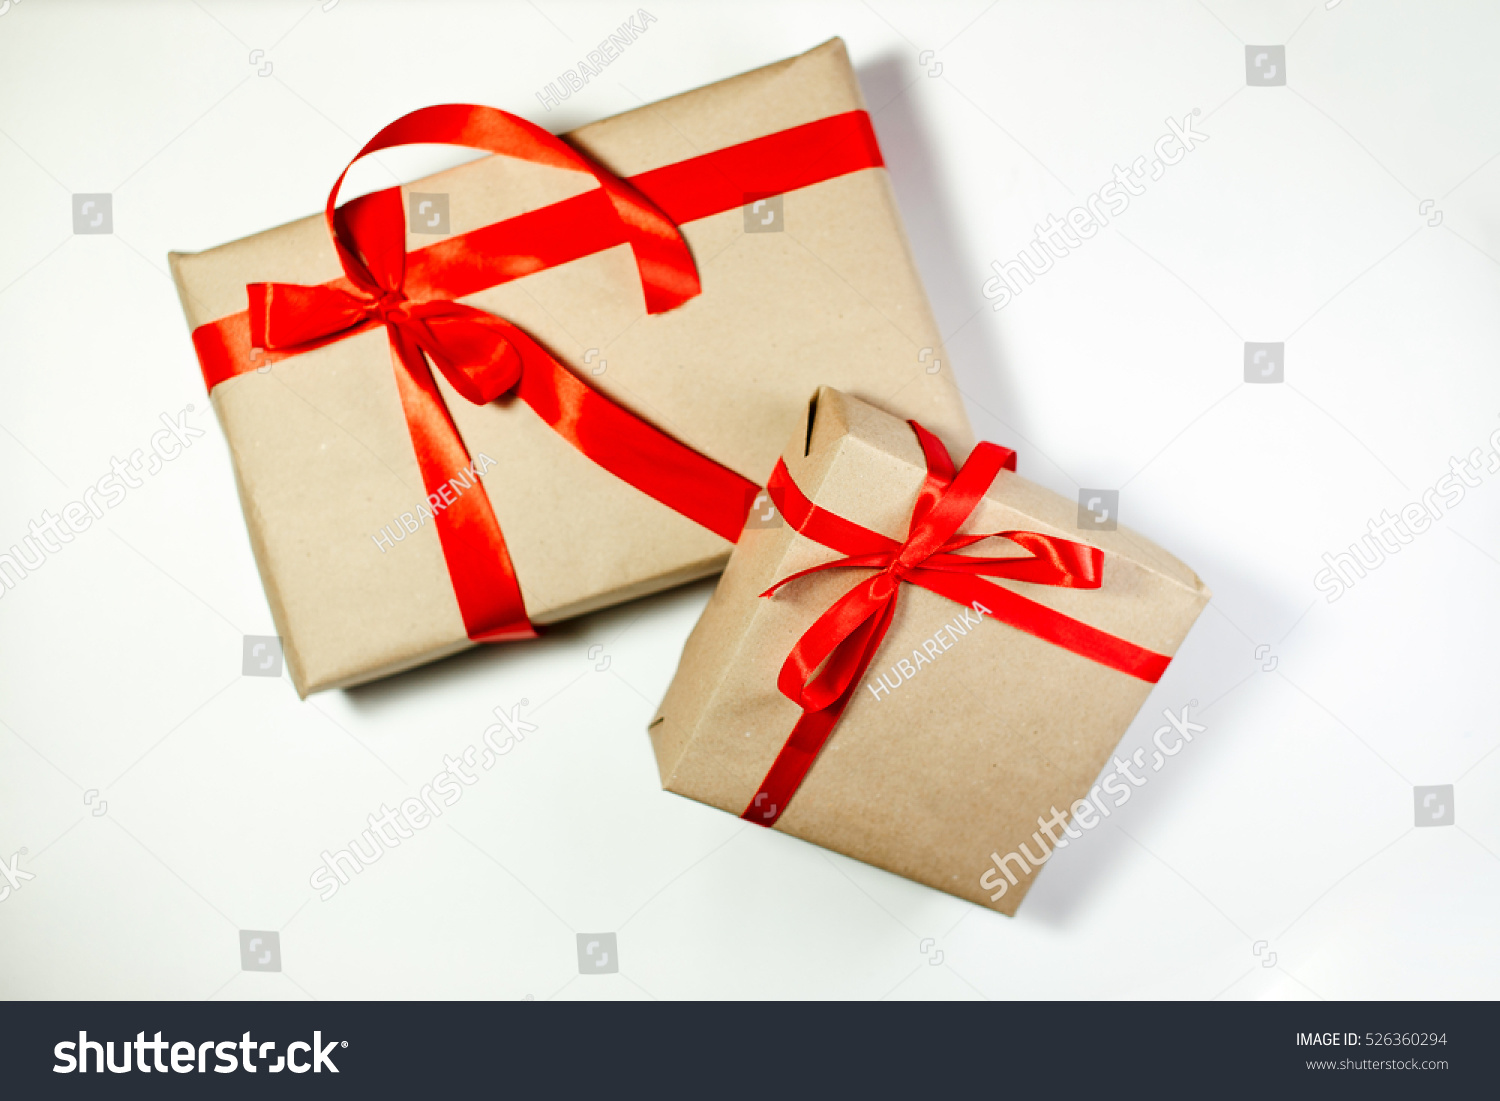 Classy Christmas Gifts Box Presents On Stock Photo (Edit Now ...